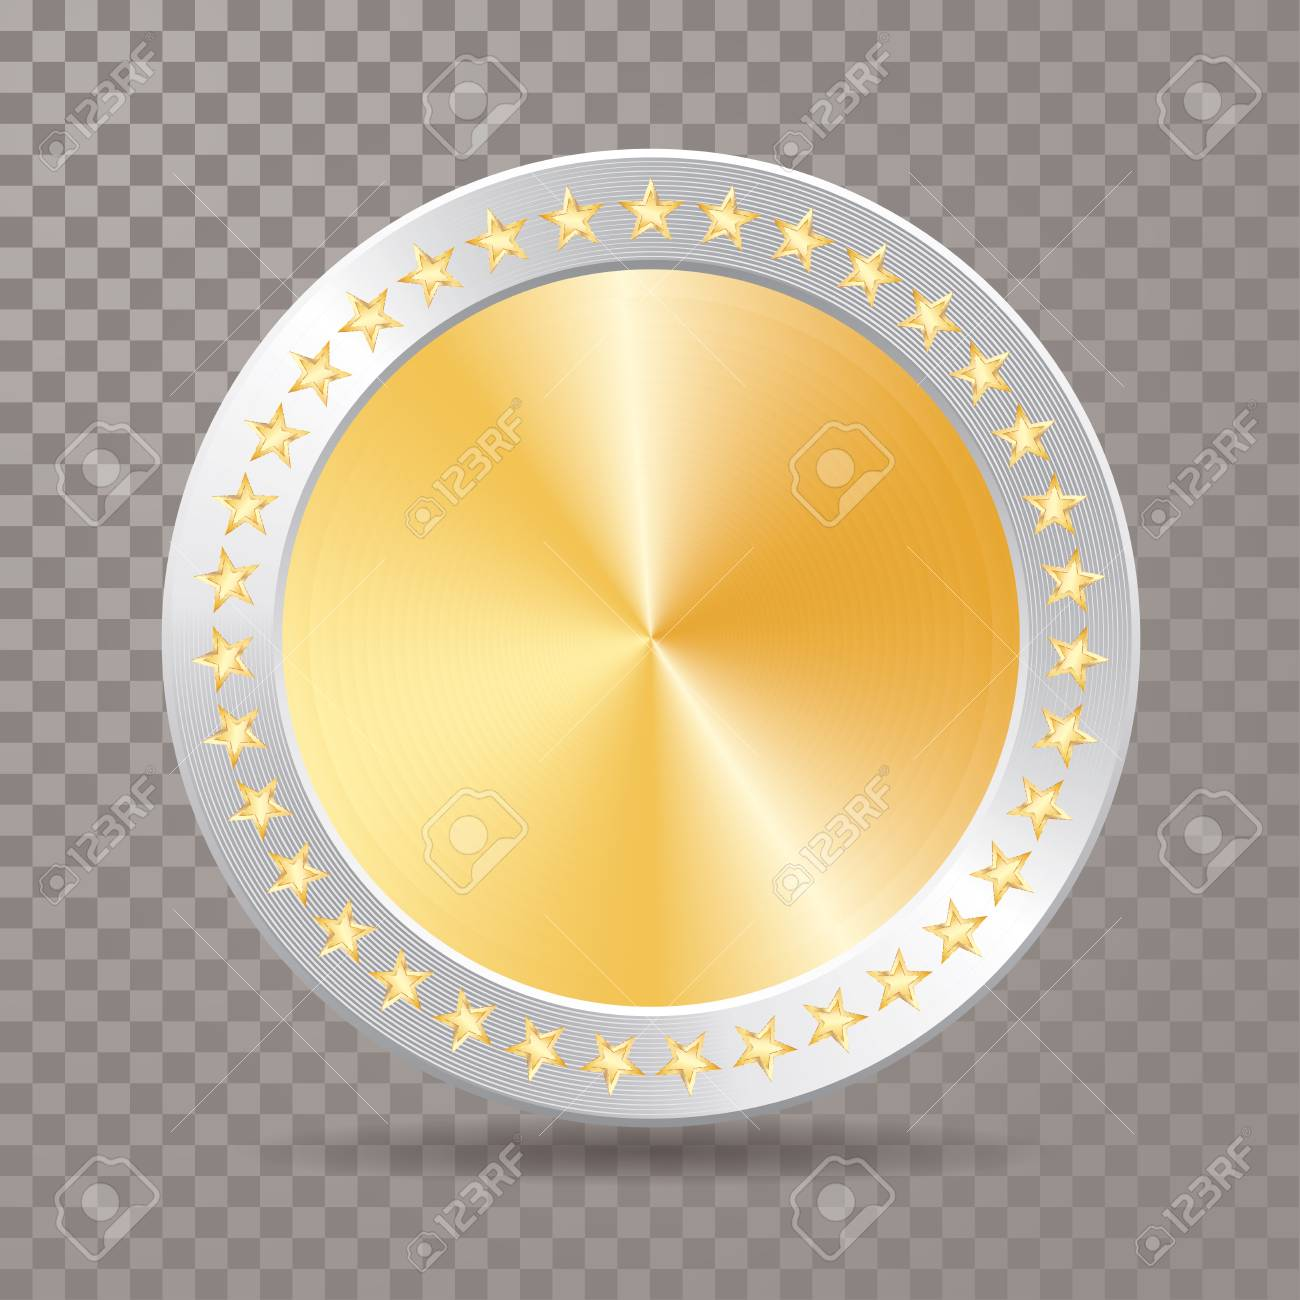 Vector Blank Gold Medal With Silver Frame And Stars Champions Royalty Free Cliparts Vectors And Stock Illustration Image 94687491